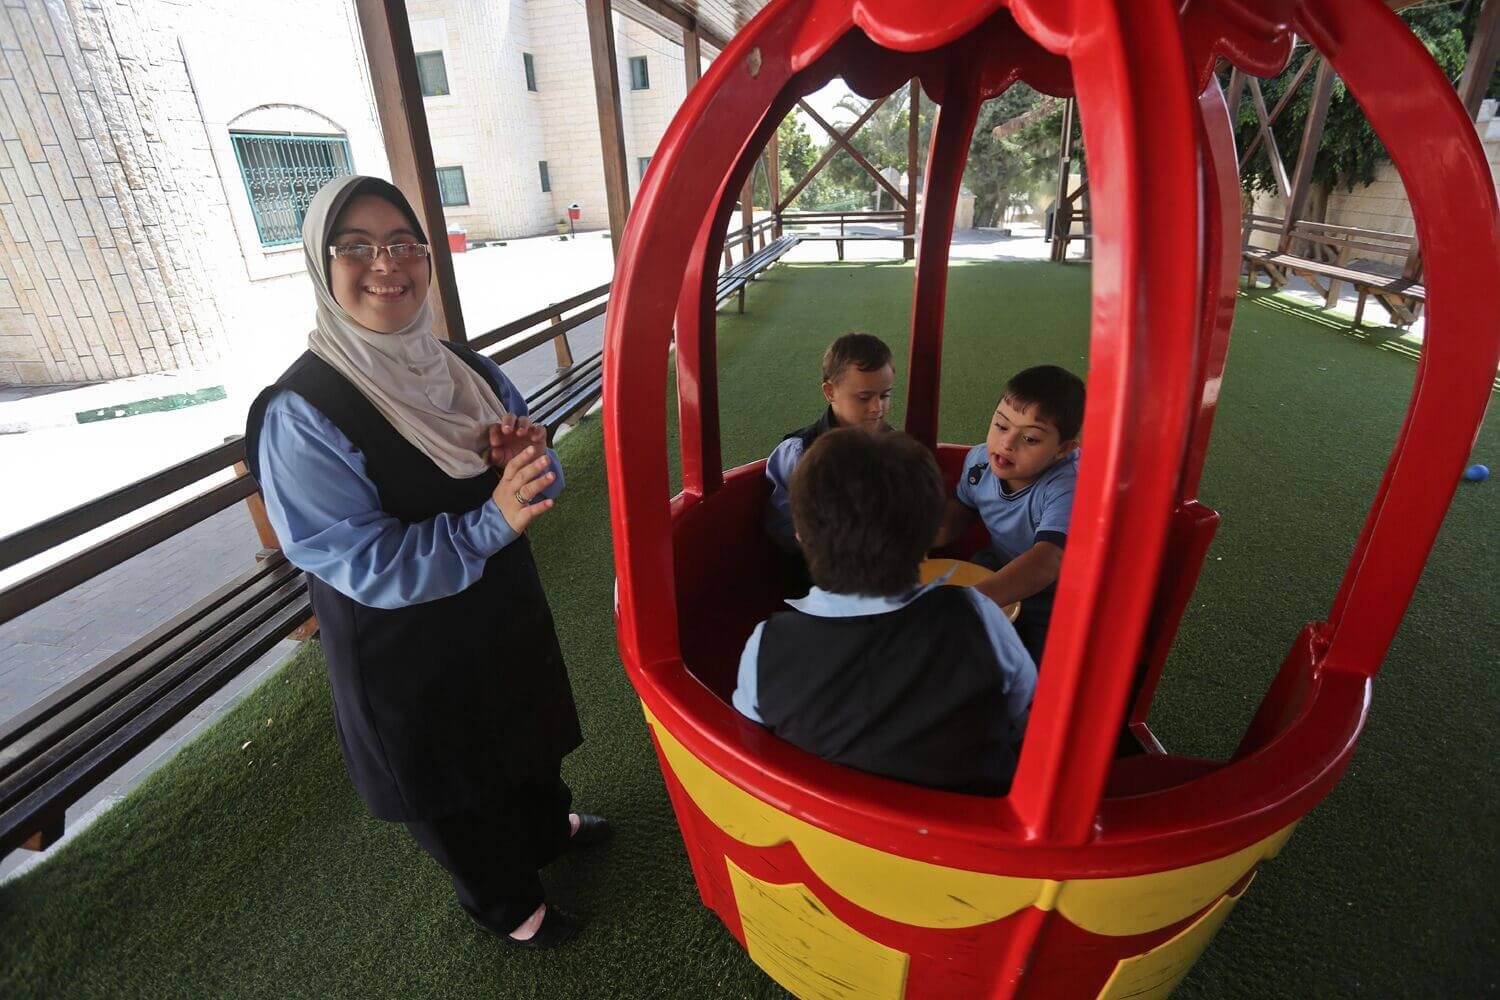 Children playing with Hiba Shurafa during a recess break at the Right to Life Society school in Gaza. (Photo: Mohammed Asad)